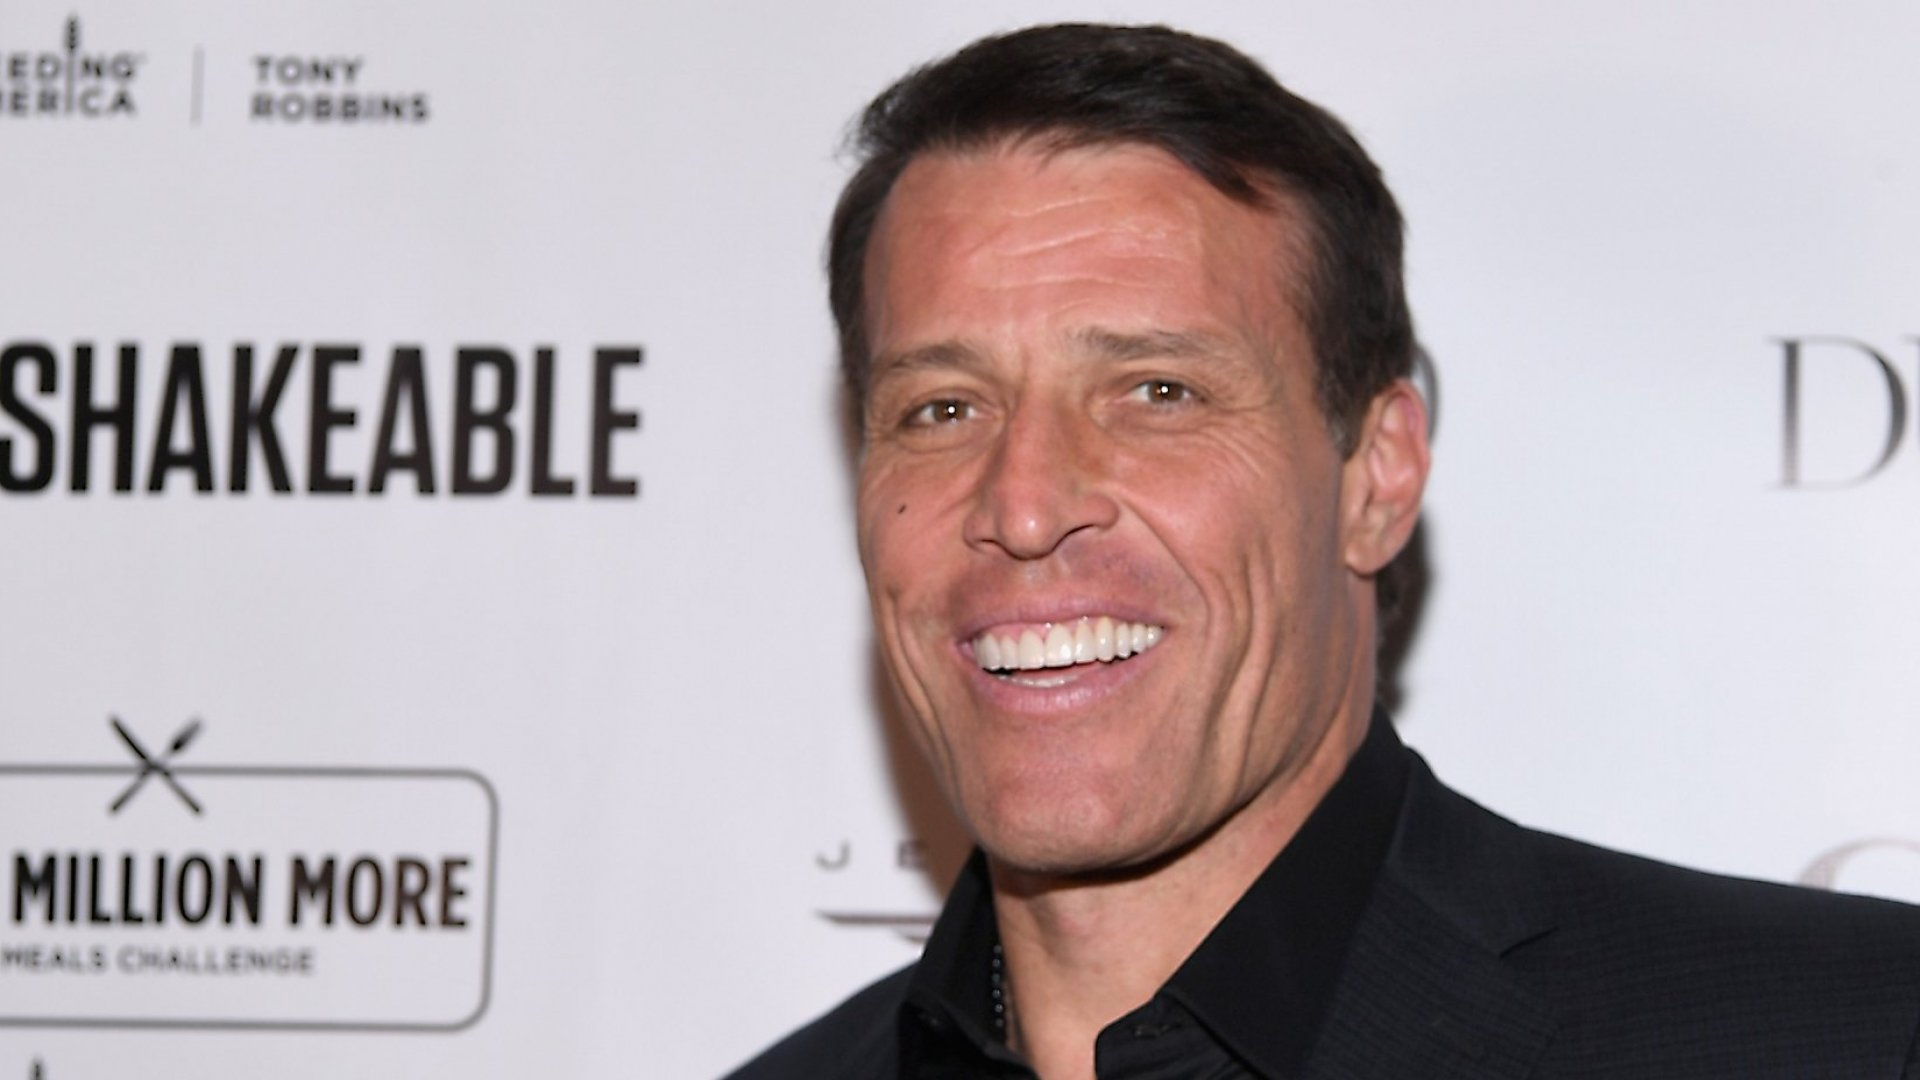 Tony Robbins: The Real Secret to Being Happy and Rich